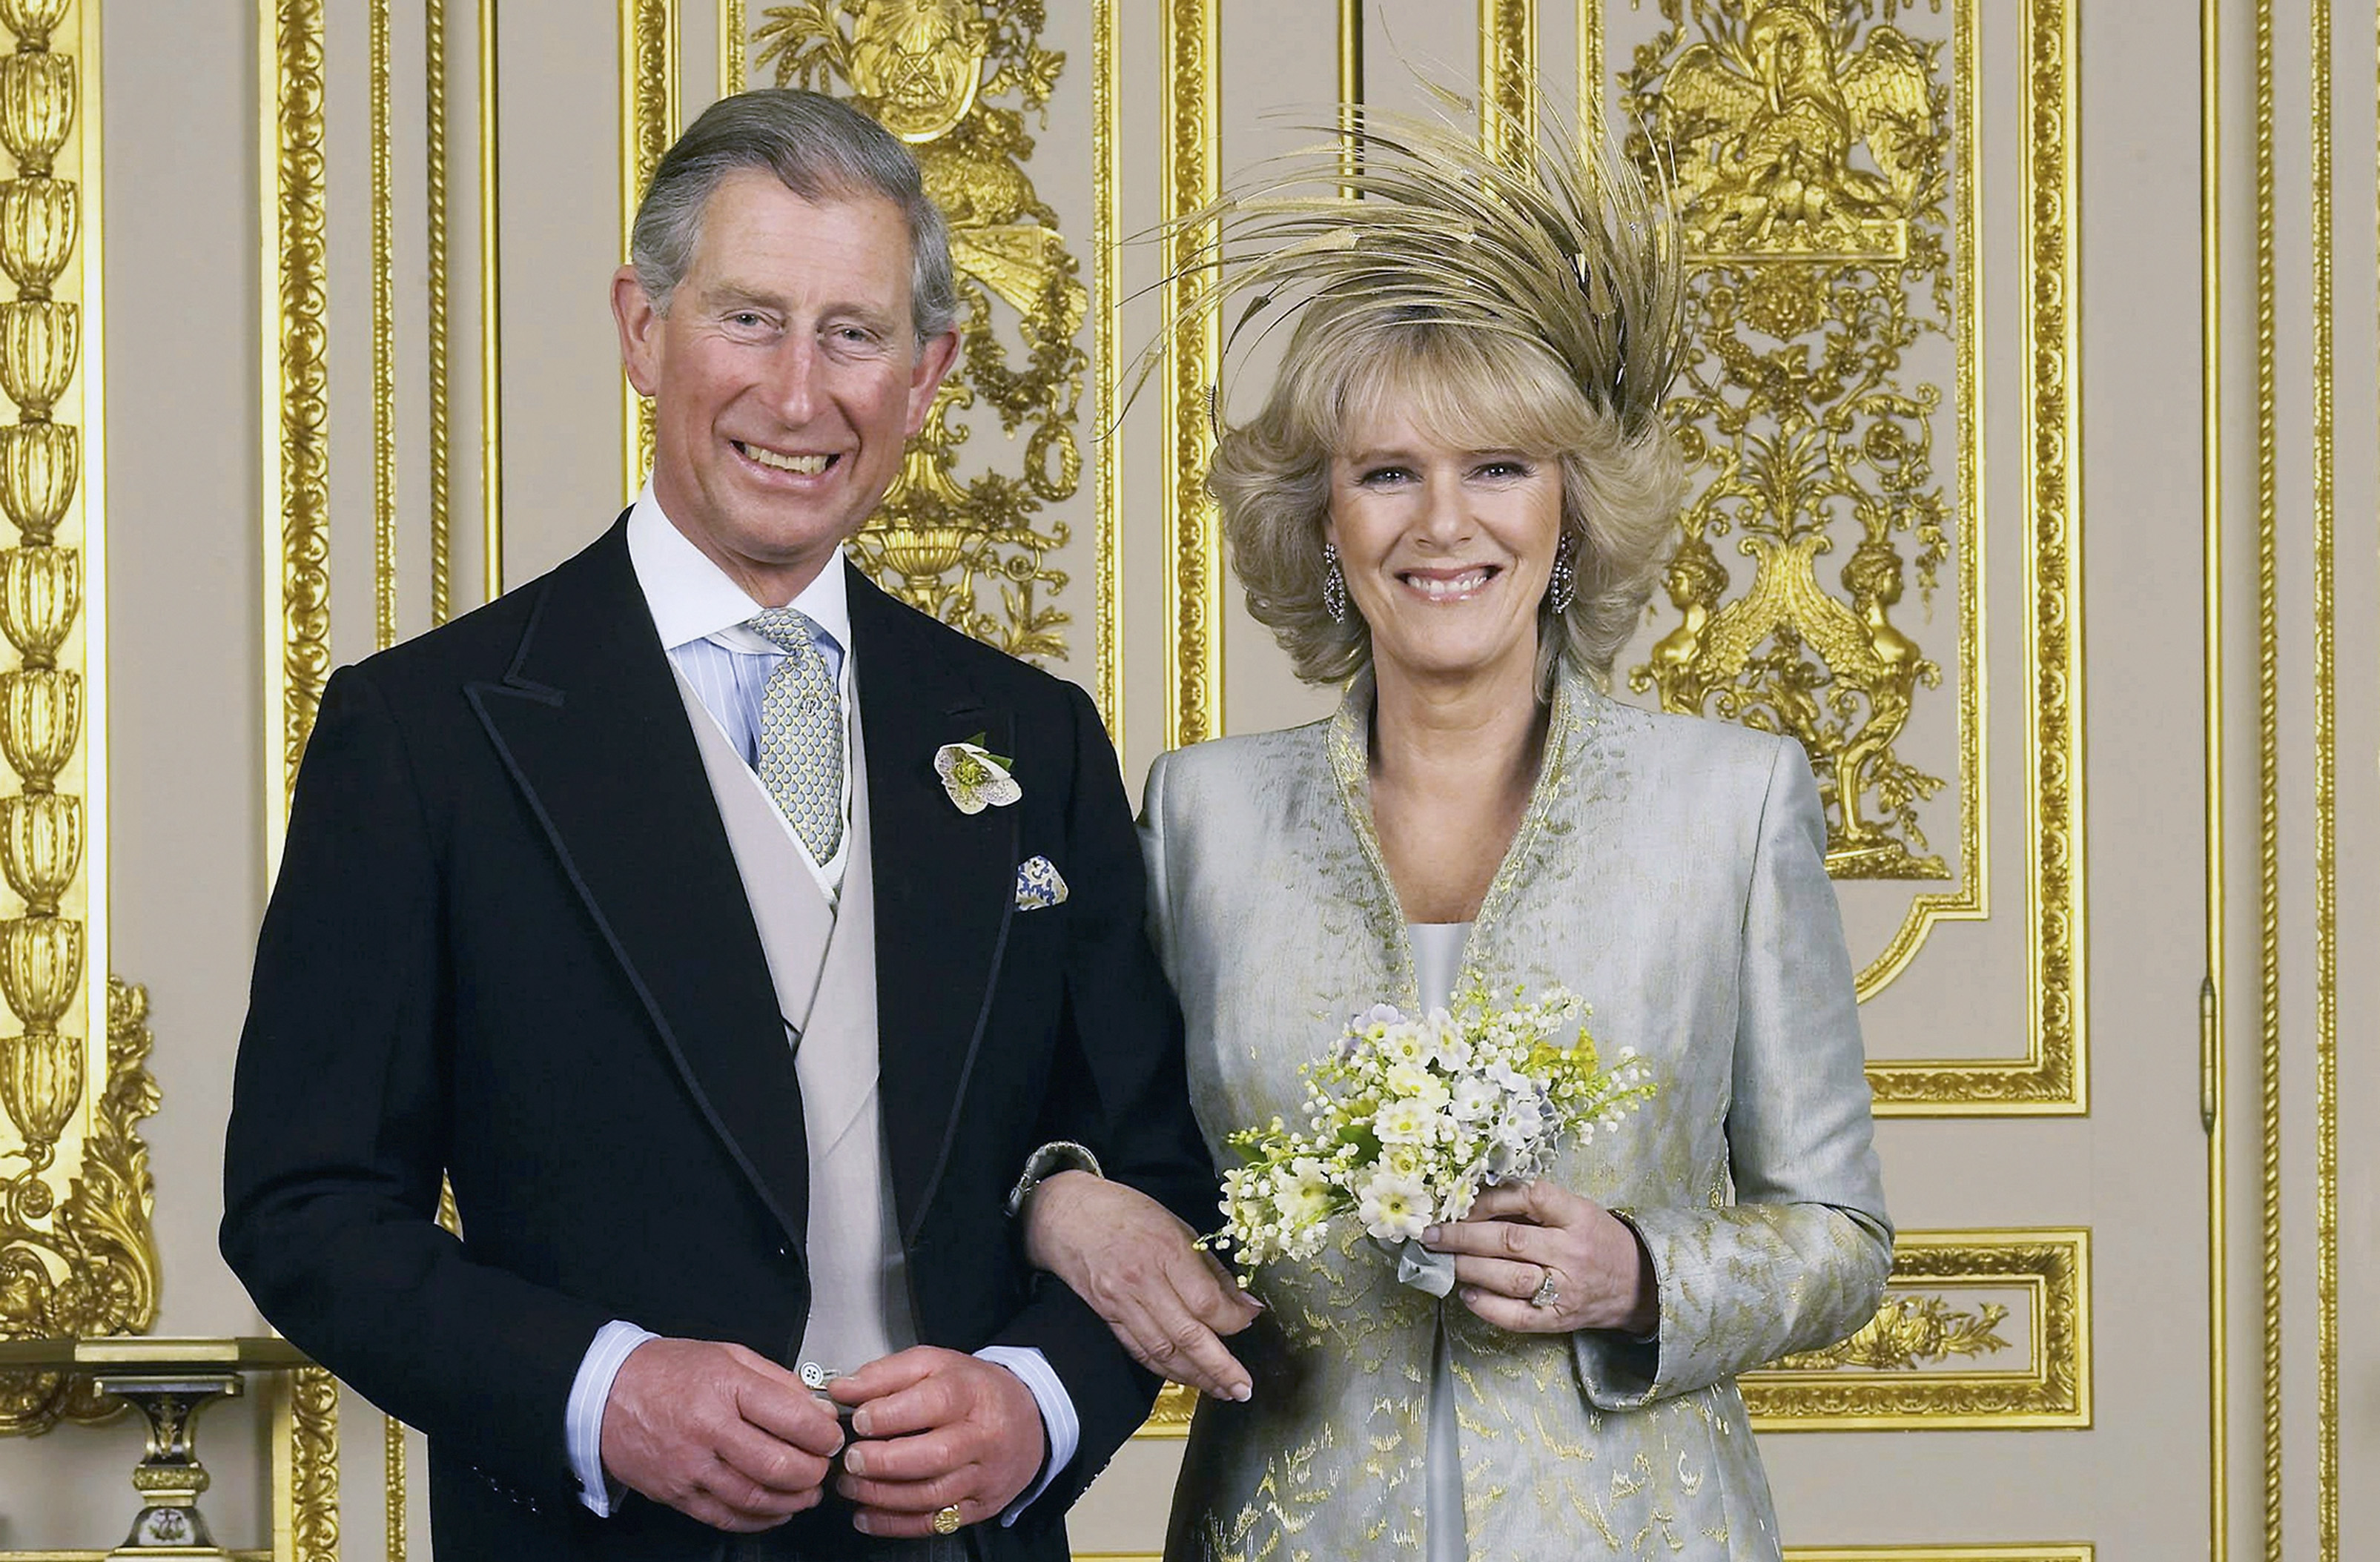 TRH Prince of Wales & The Duchess Of Cornwall - Official Wedding Photo.